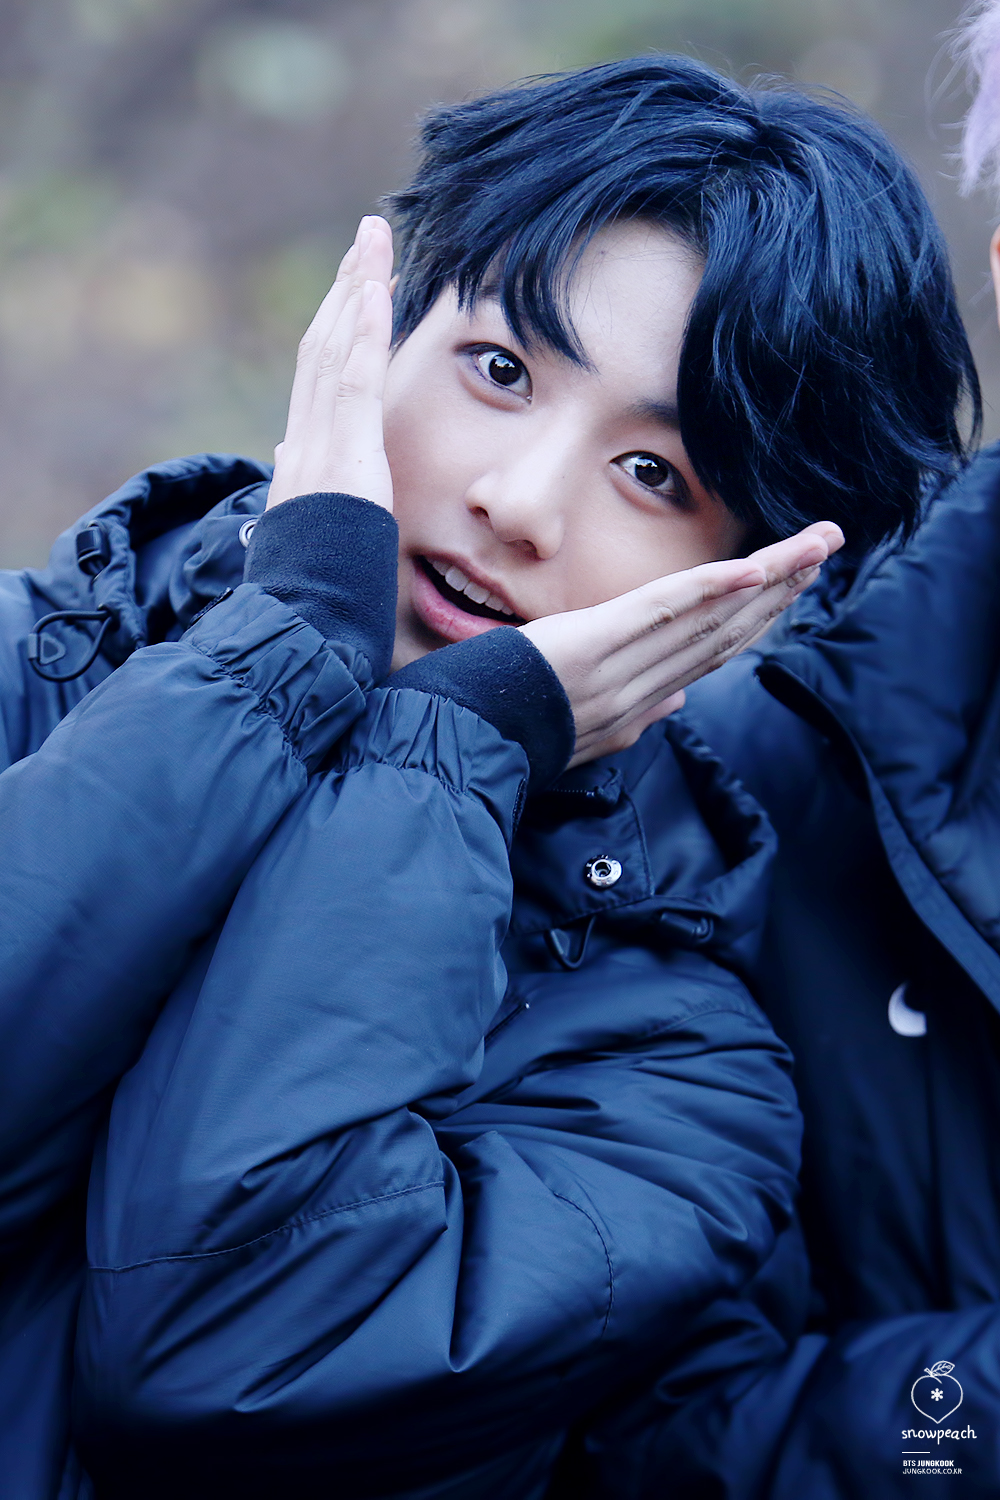 noona meroyan: 33 Reasons You Should Be In Love With Jungkook